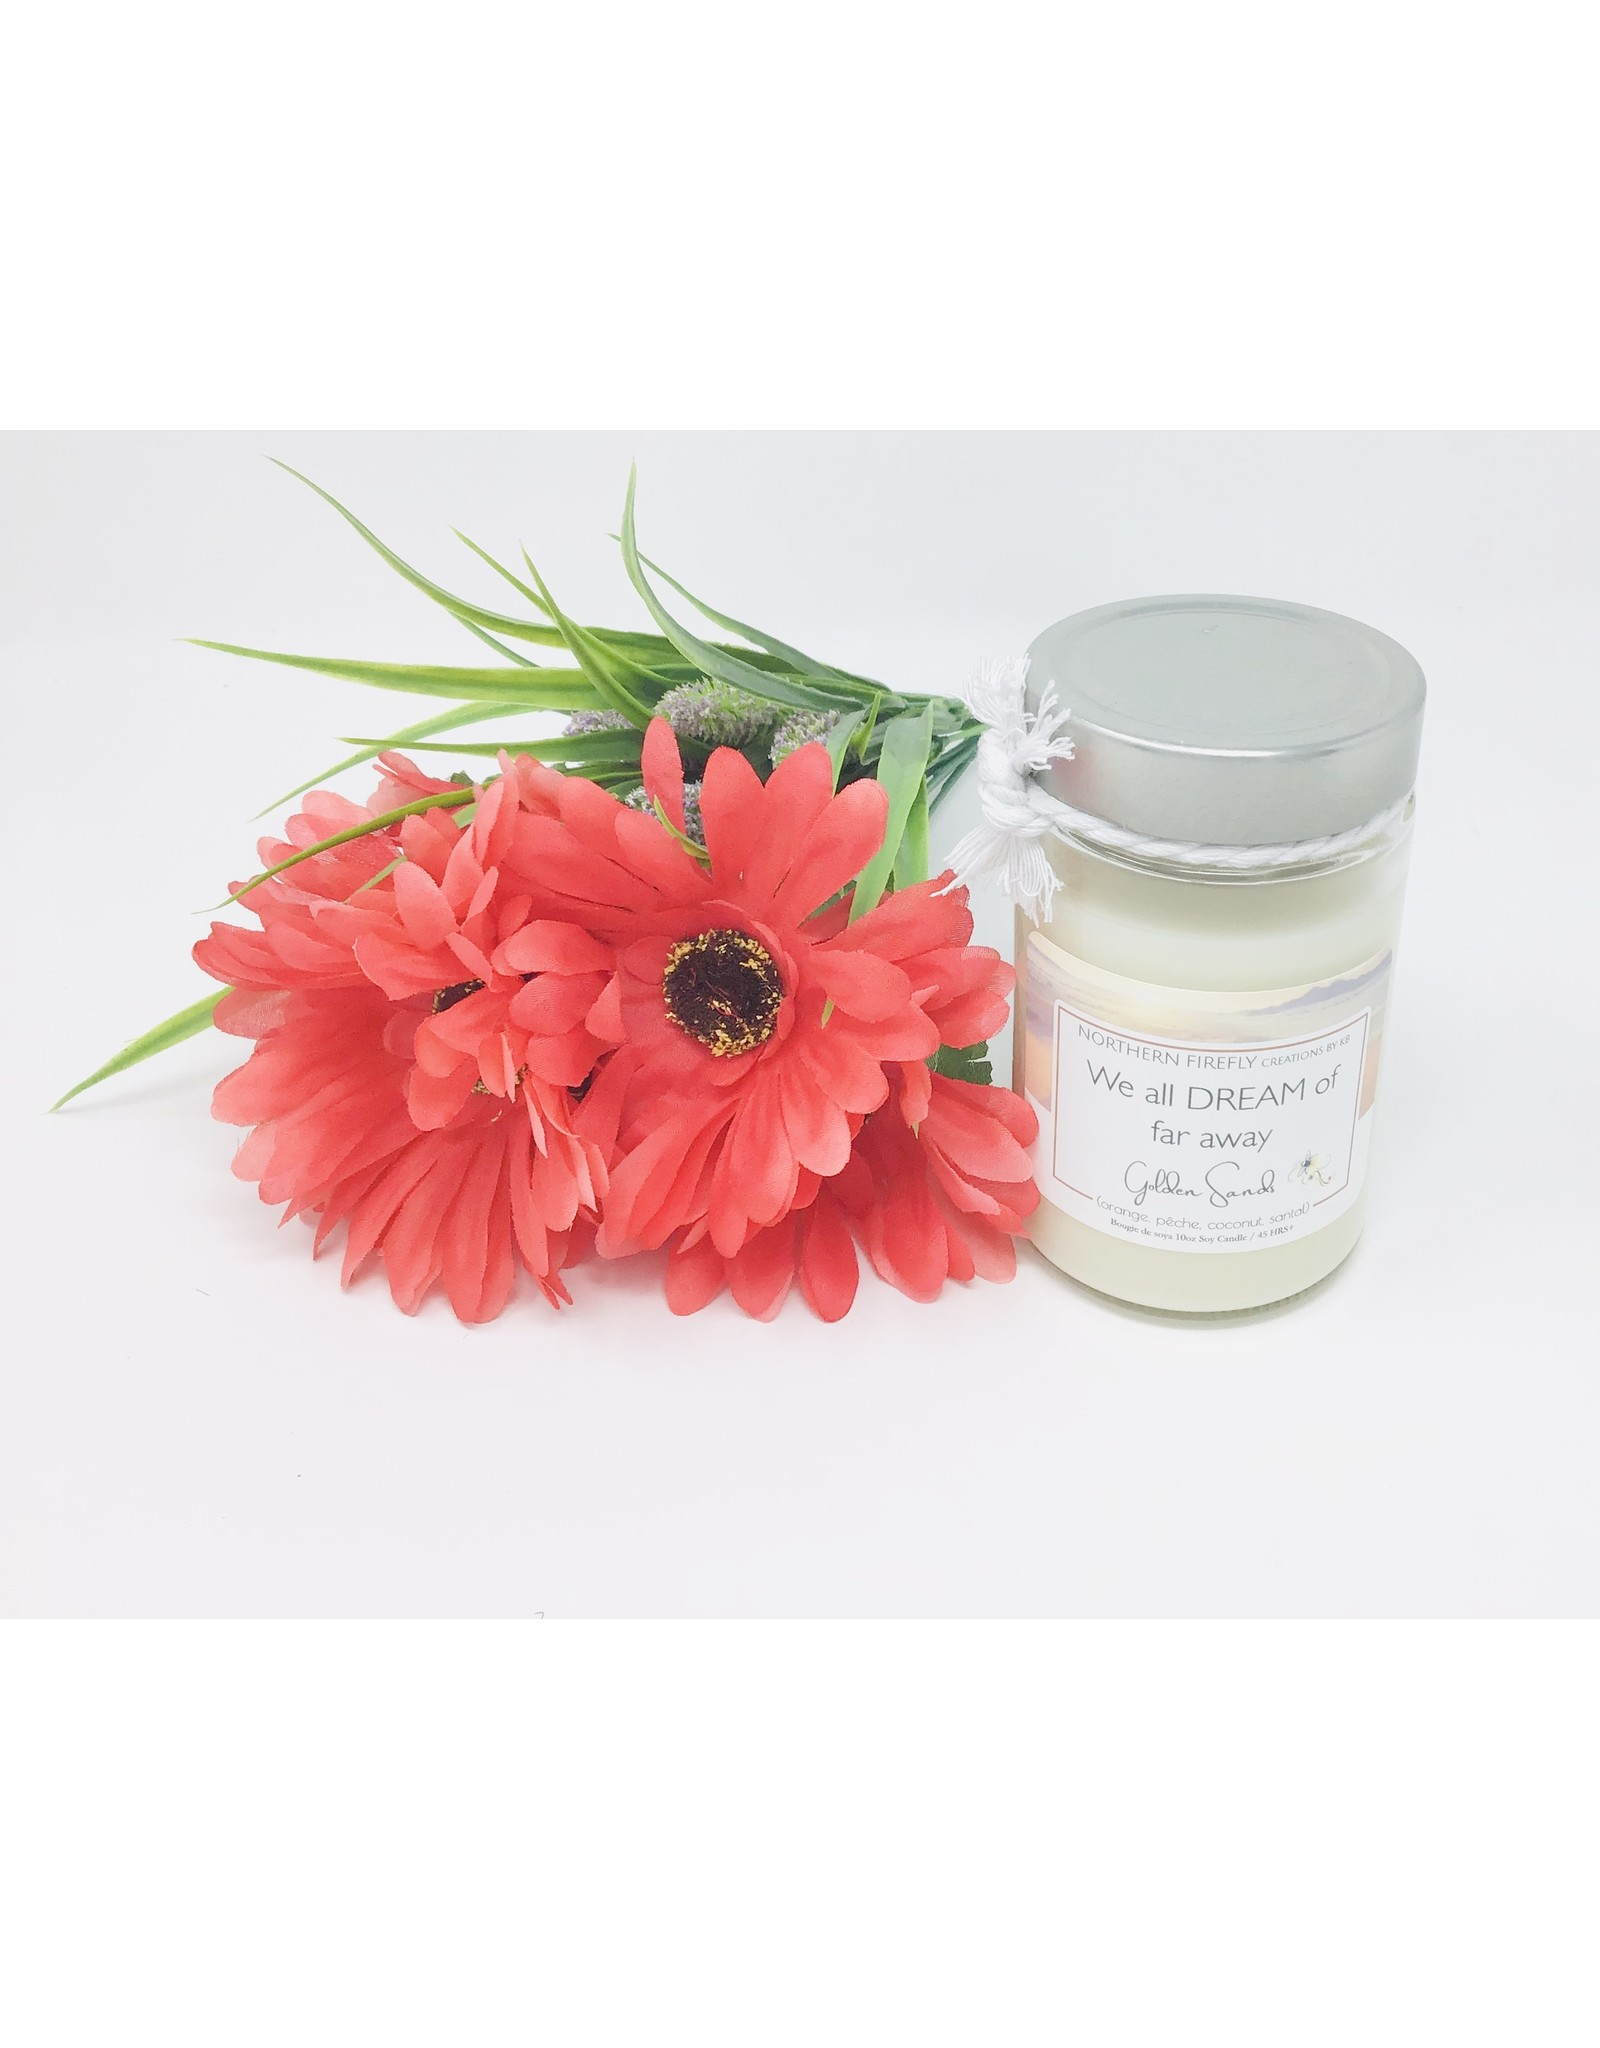 Northern Firefly Candle, Collection Ete